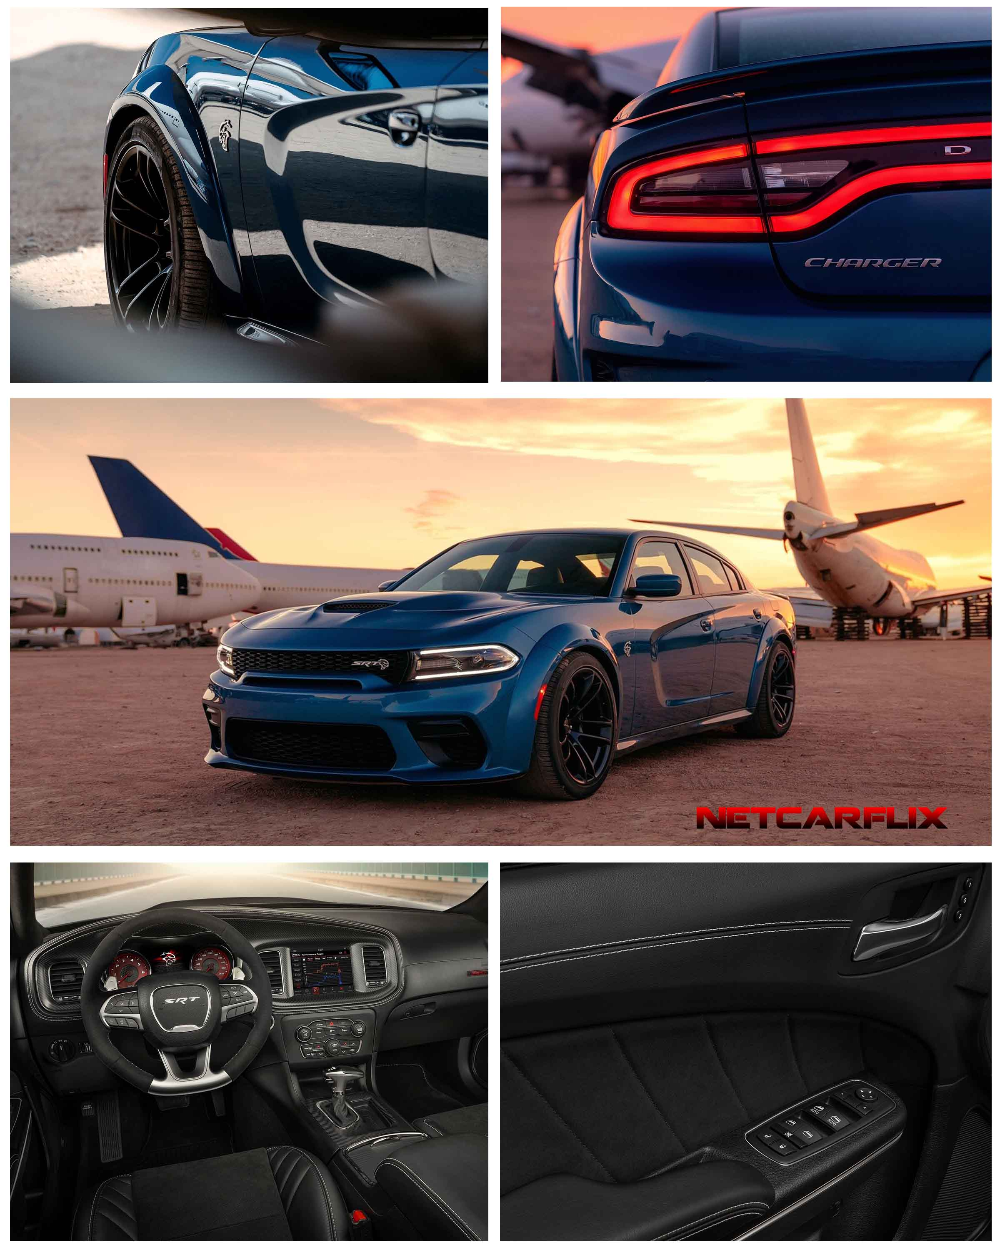 2020 Dodge Charger Srt Hellcat Widebody Hd Pictures Specs Information Videos In 2020 Charger Srt Charger Srt Hellcat Dodge Charger Hellcat